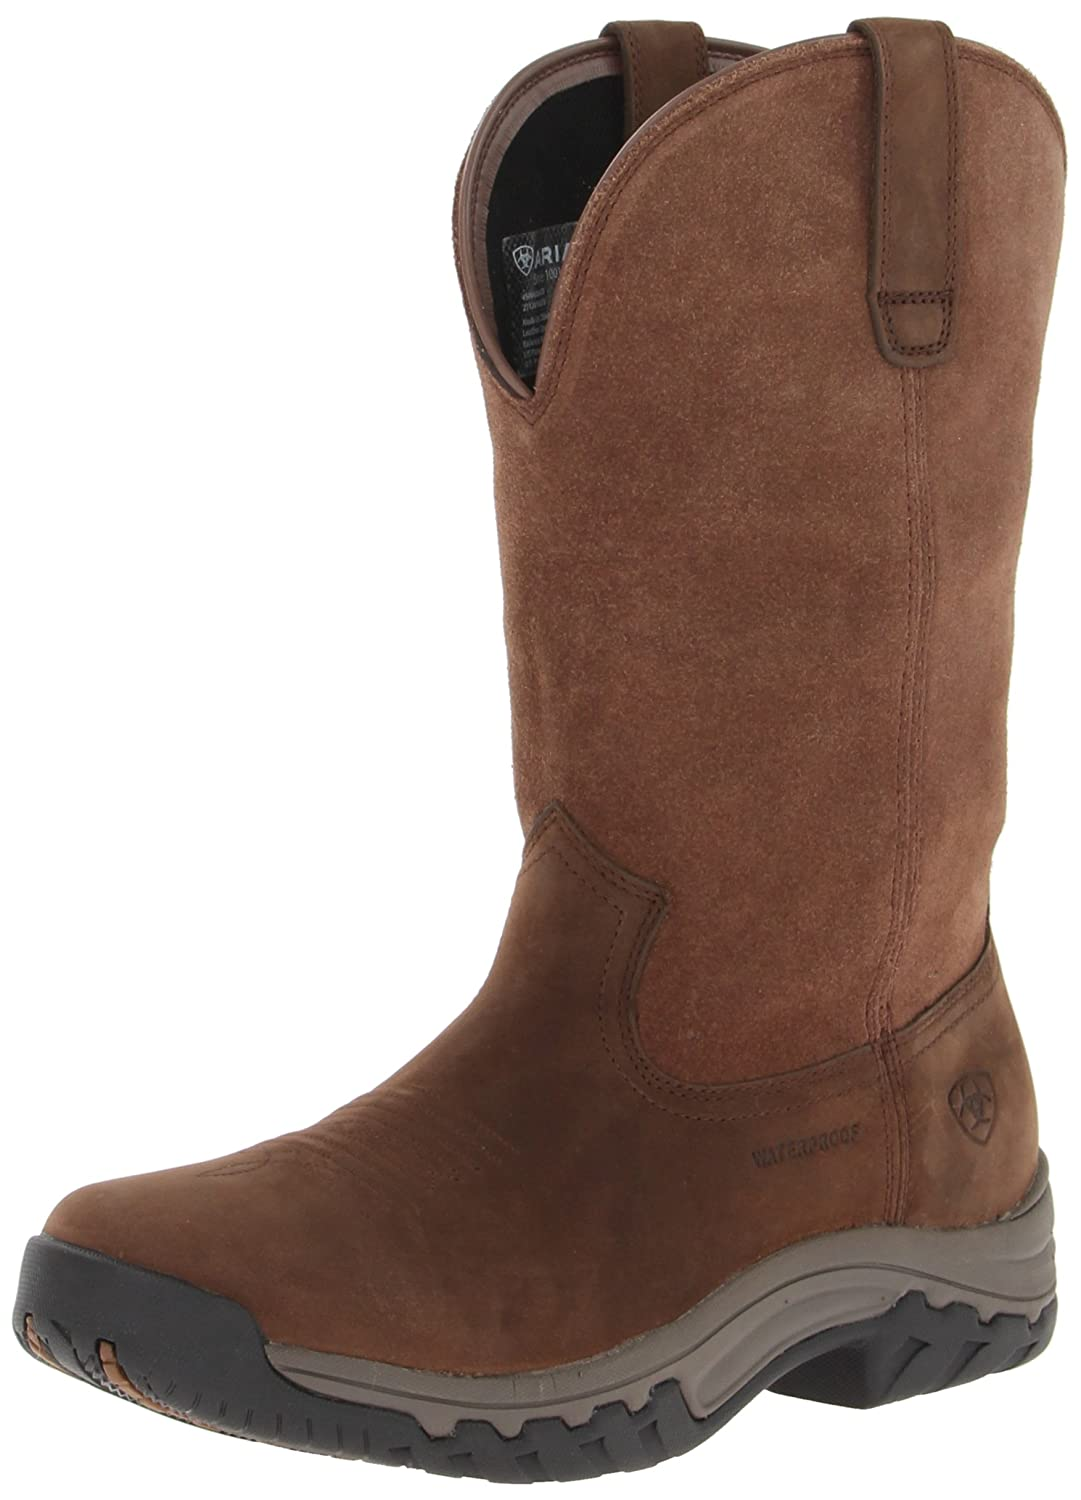 Ariat Women's Terrain Pull-on H2o Western Boot B00BI5E7V4 7.5 B(M) US|Distressed Brown